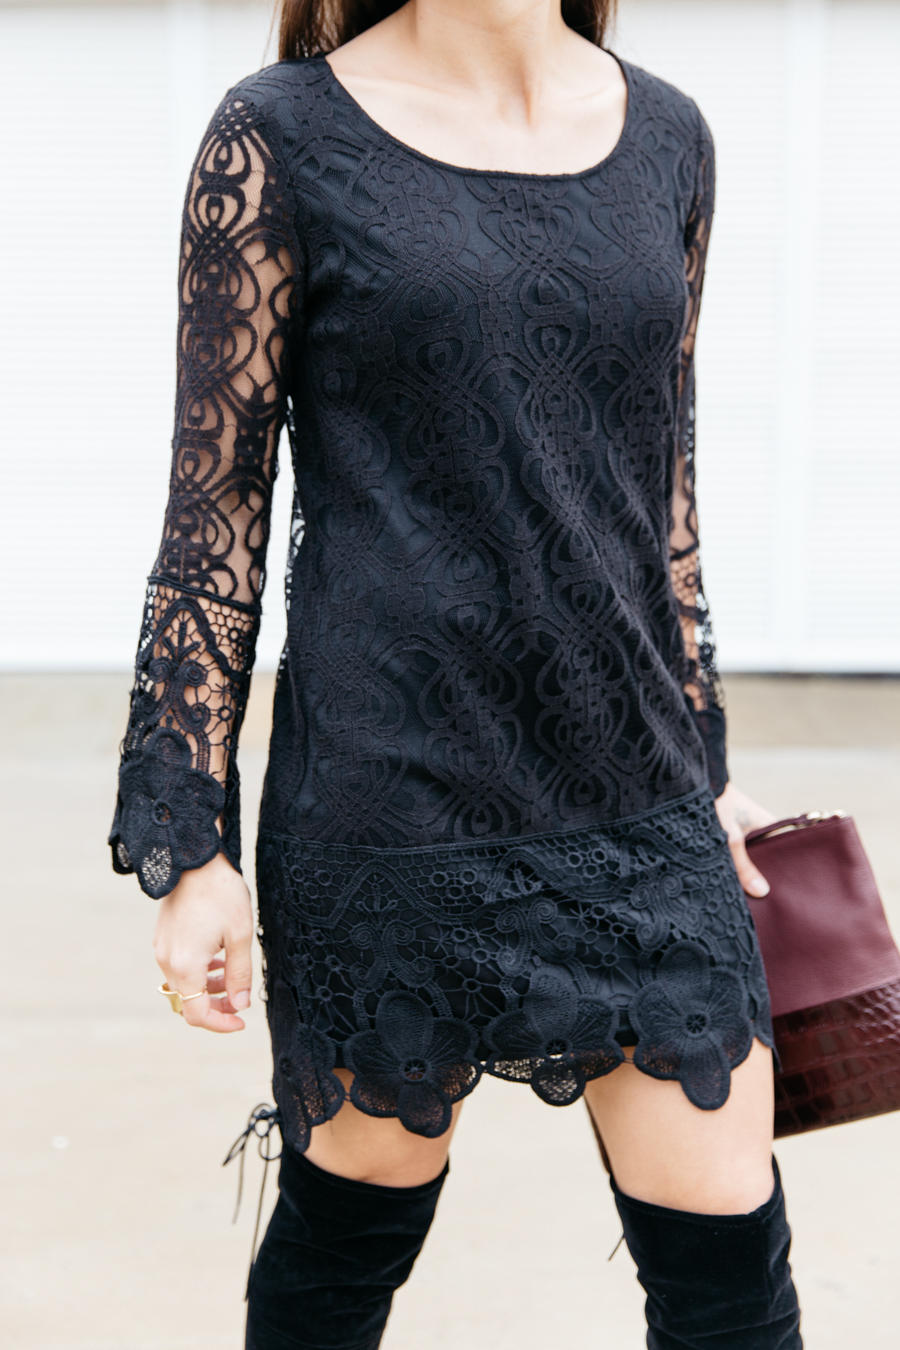 How to wear black lace & boots.